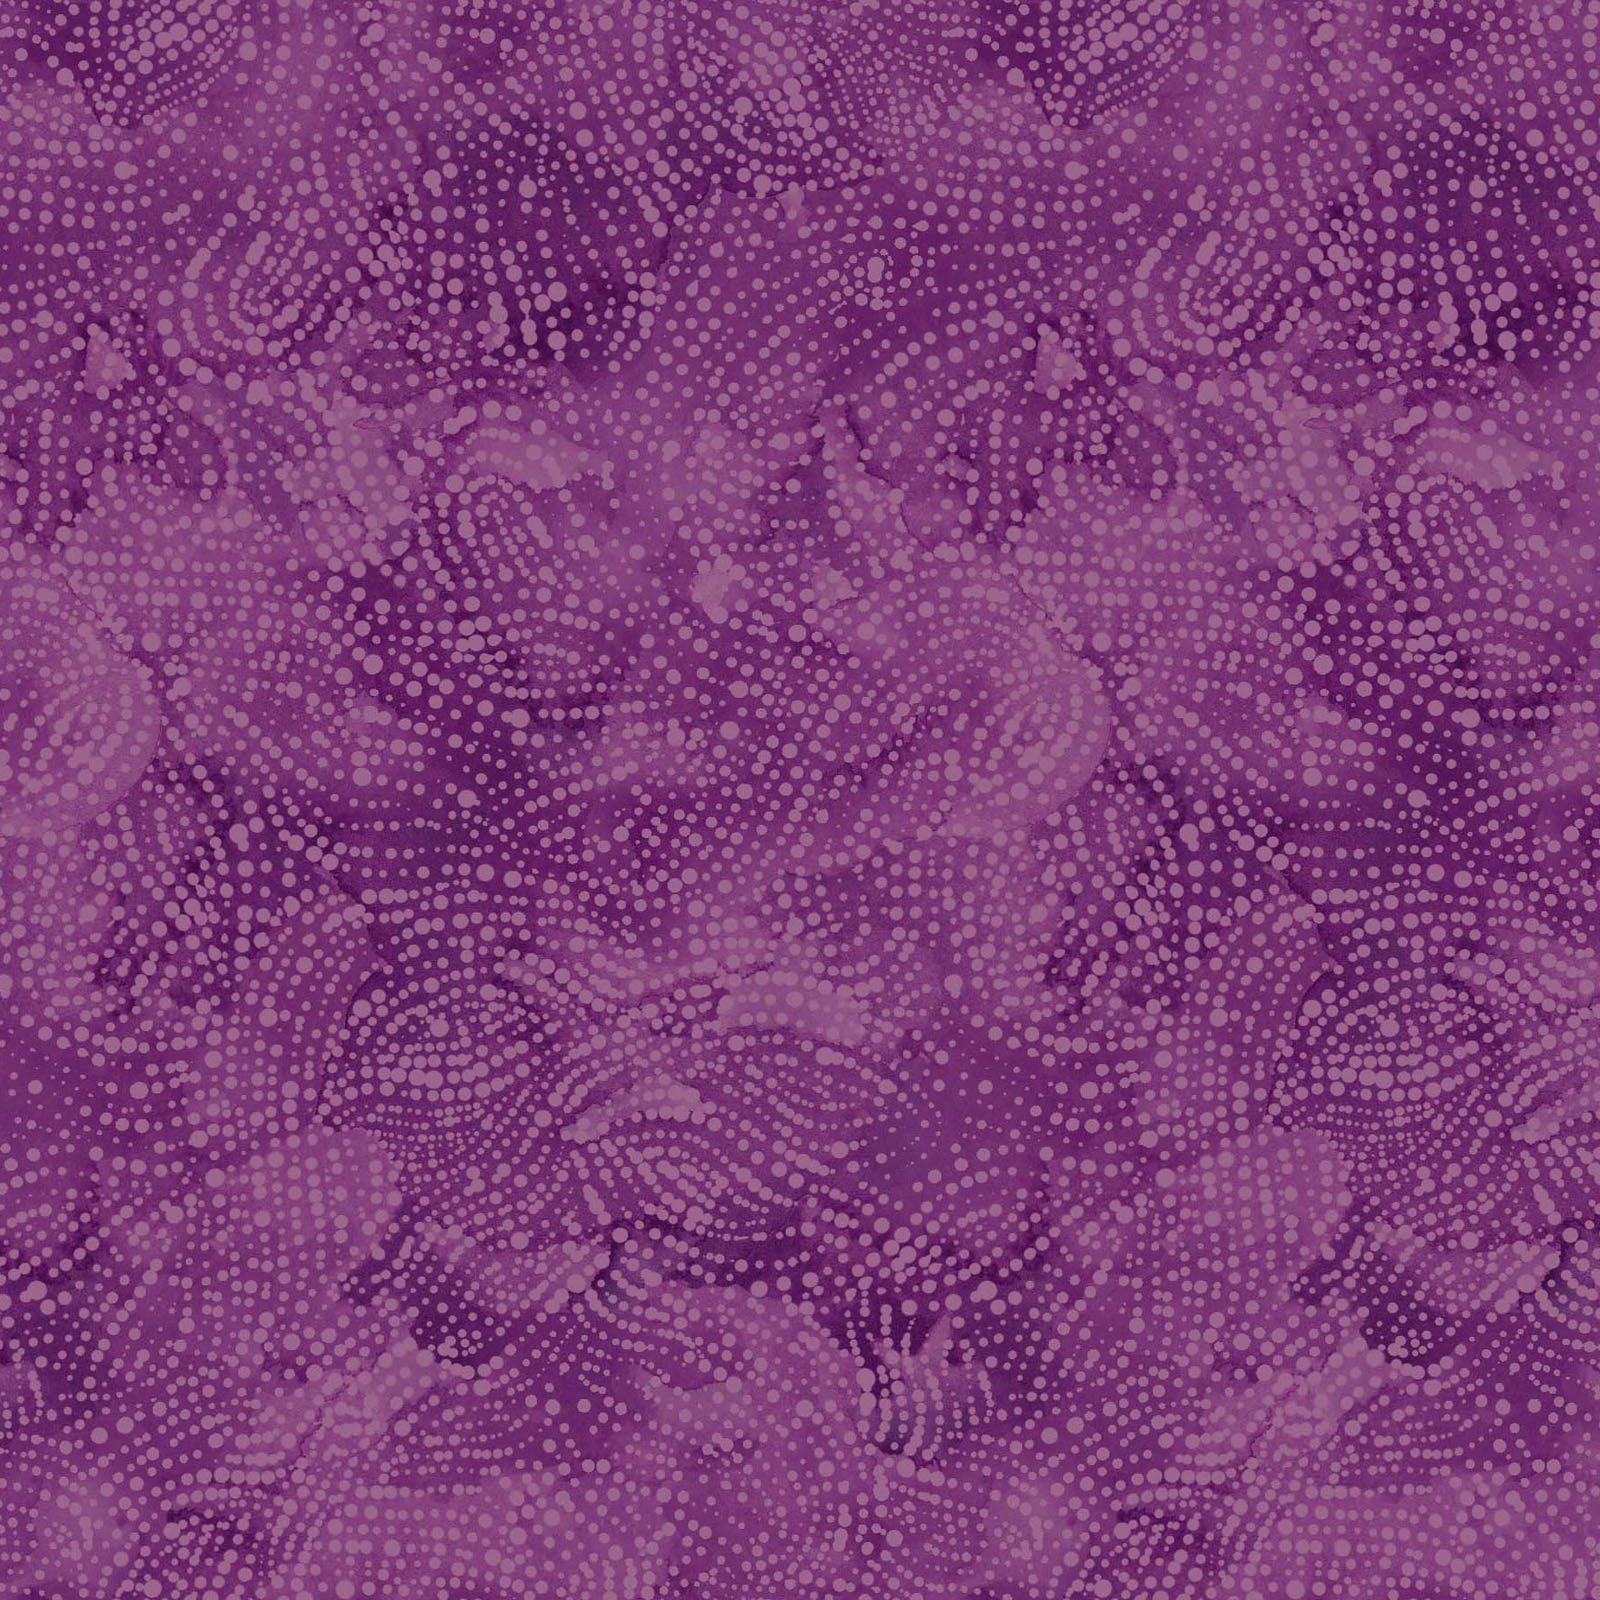 SERE-4492 F - SERENITY BY JETTI HOME PURPLE - ARRIVING IN JULY 2021